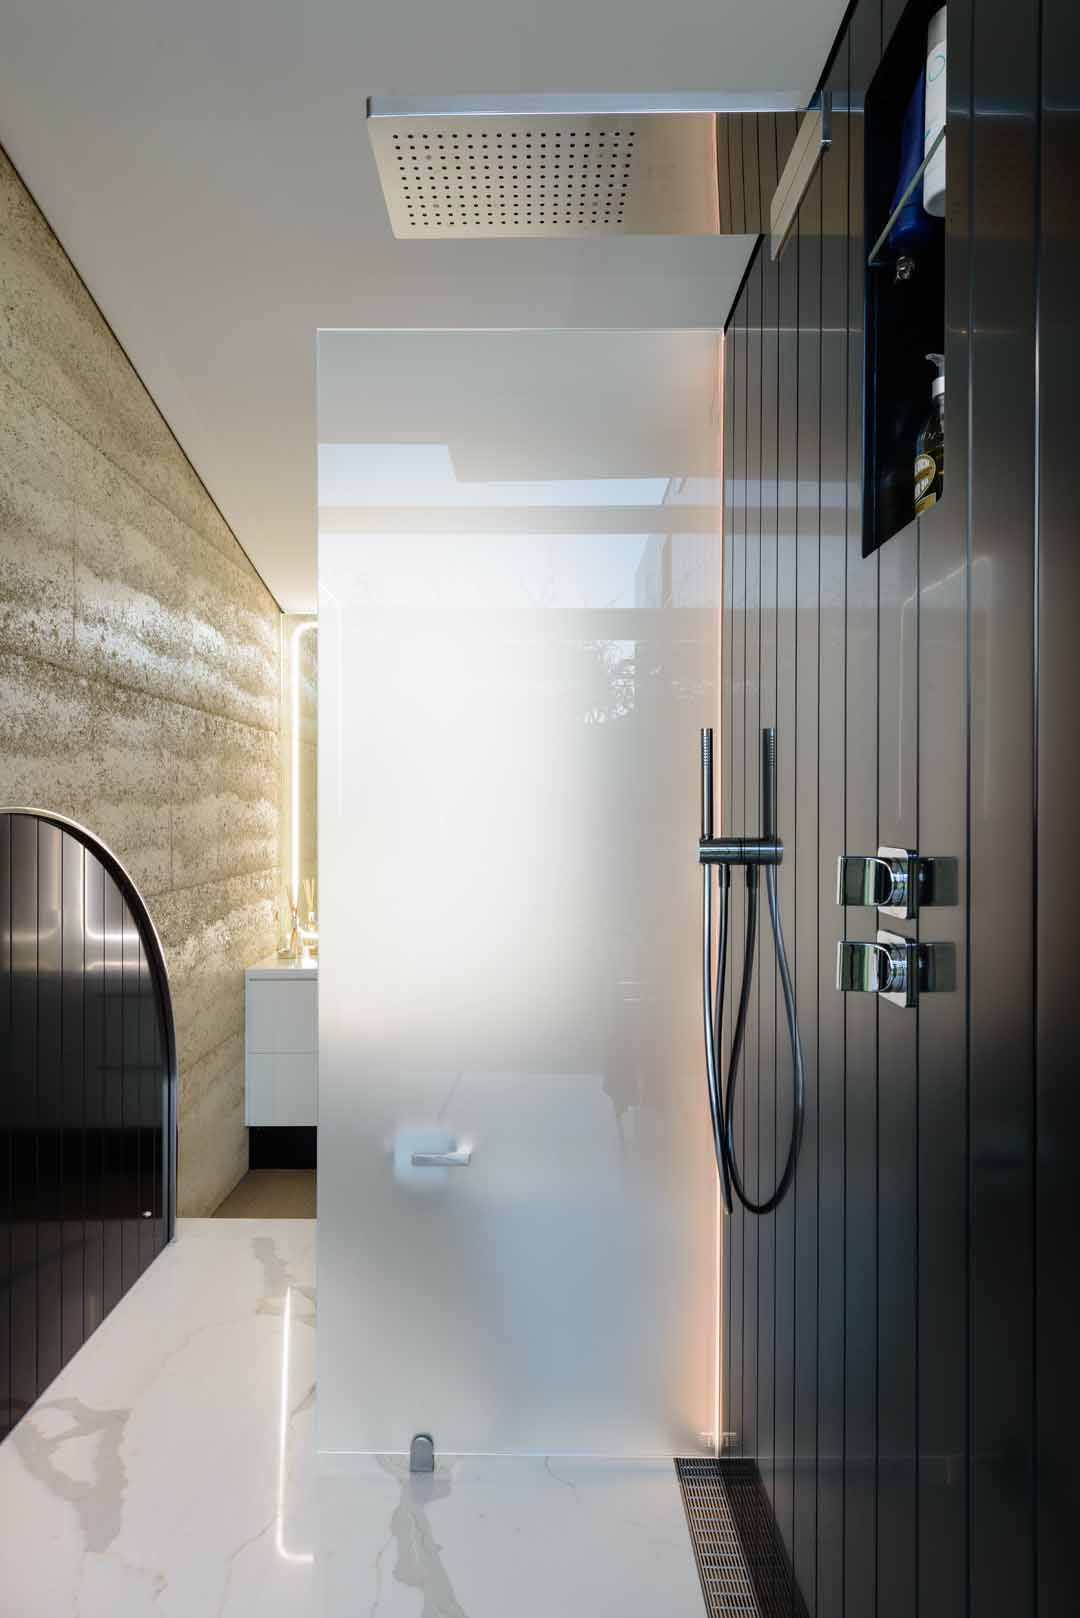 The timeless elegance of Staron Onyx in this bathroom